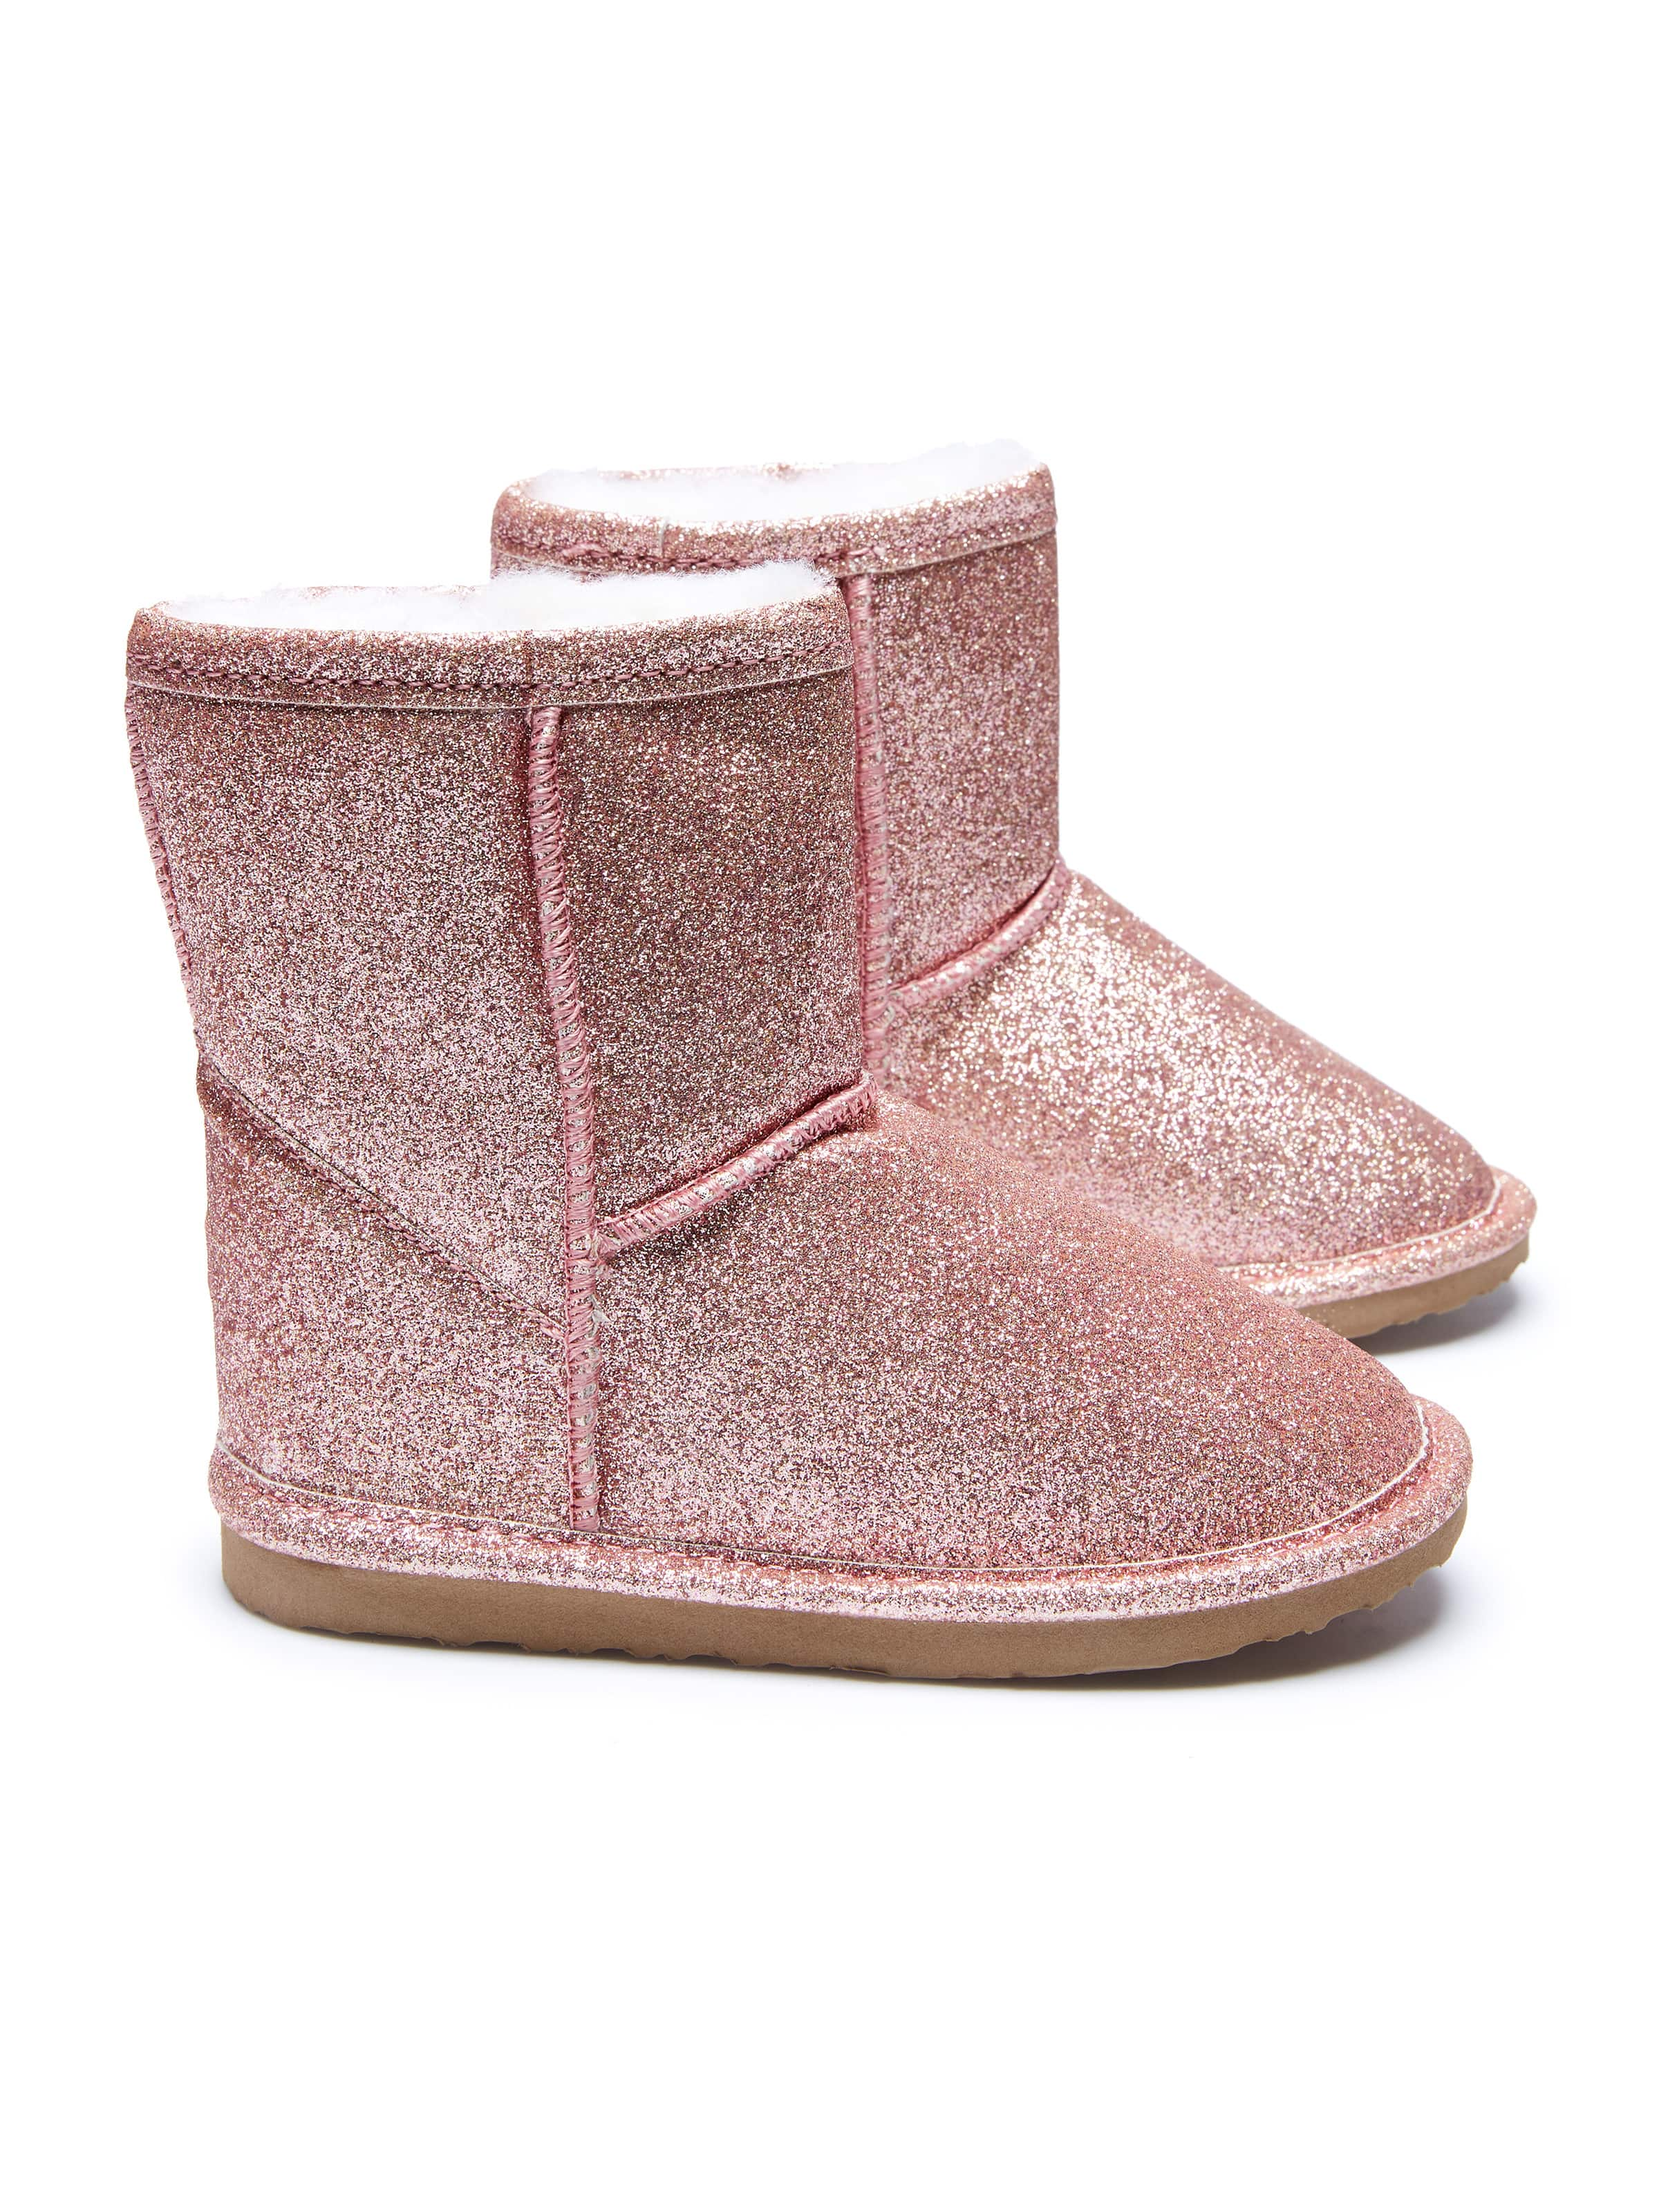 Kids Limited Edition Rose Gold Glitter Homeboots